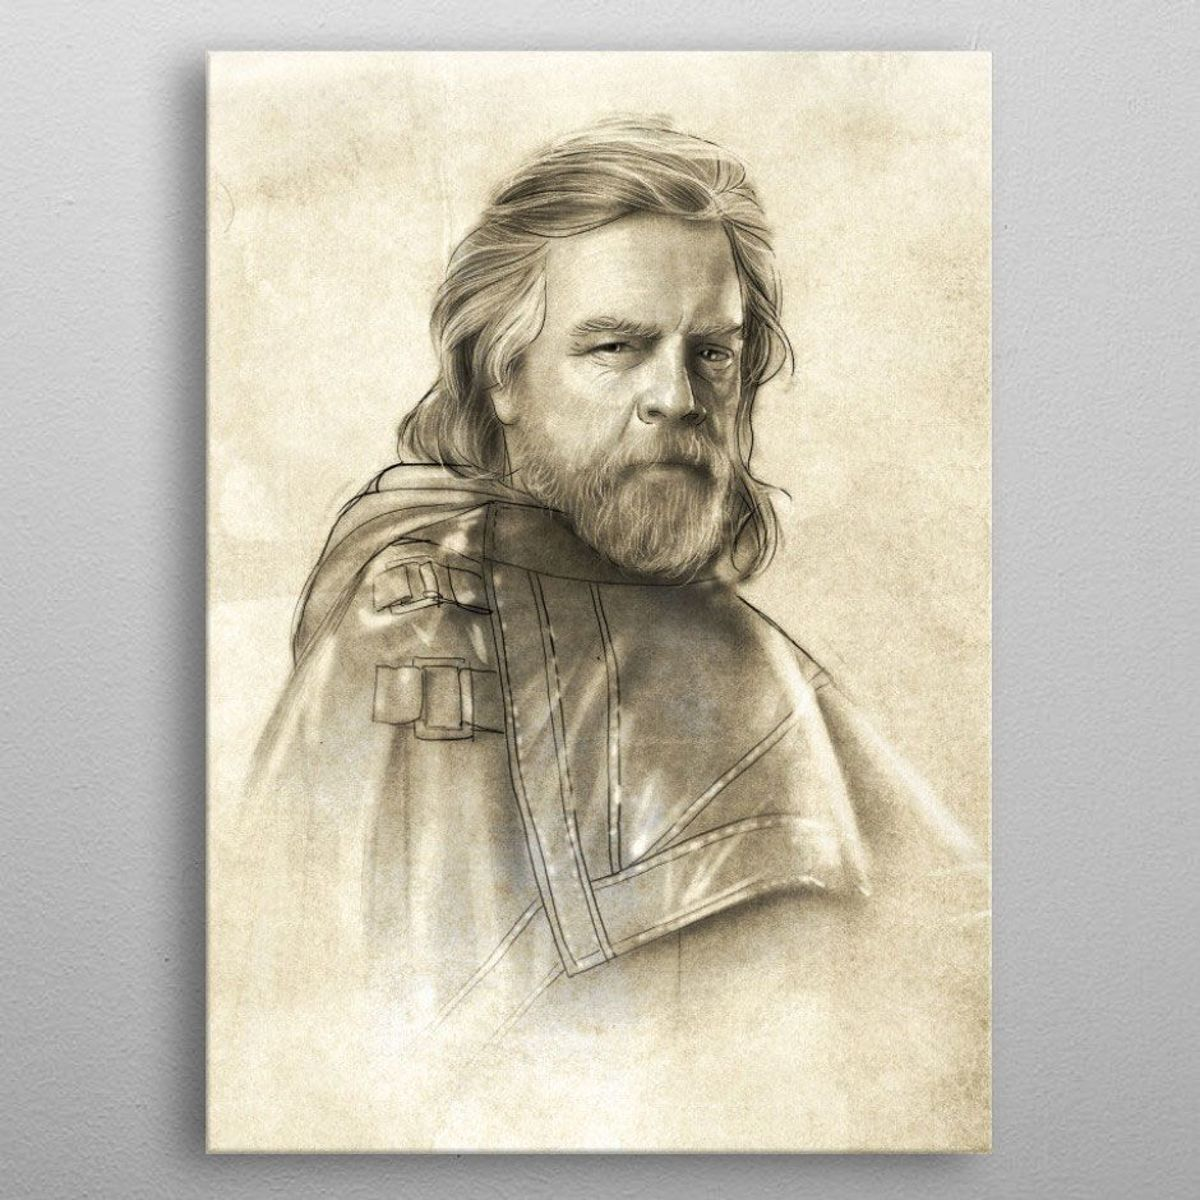 Displate Star Wars metal poster 10x14cm - Last Jedi Luke Skywalker (9999 ex.) kopen